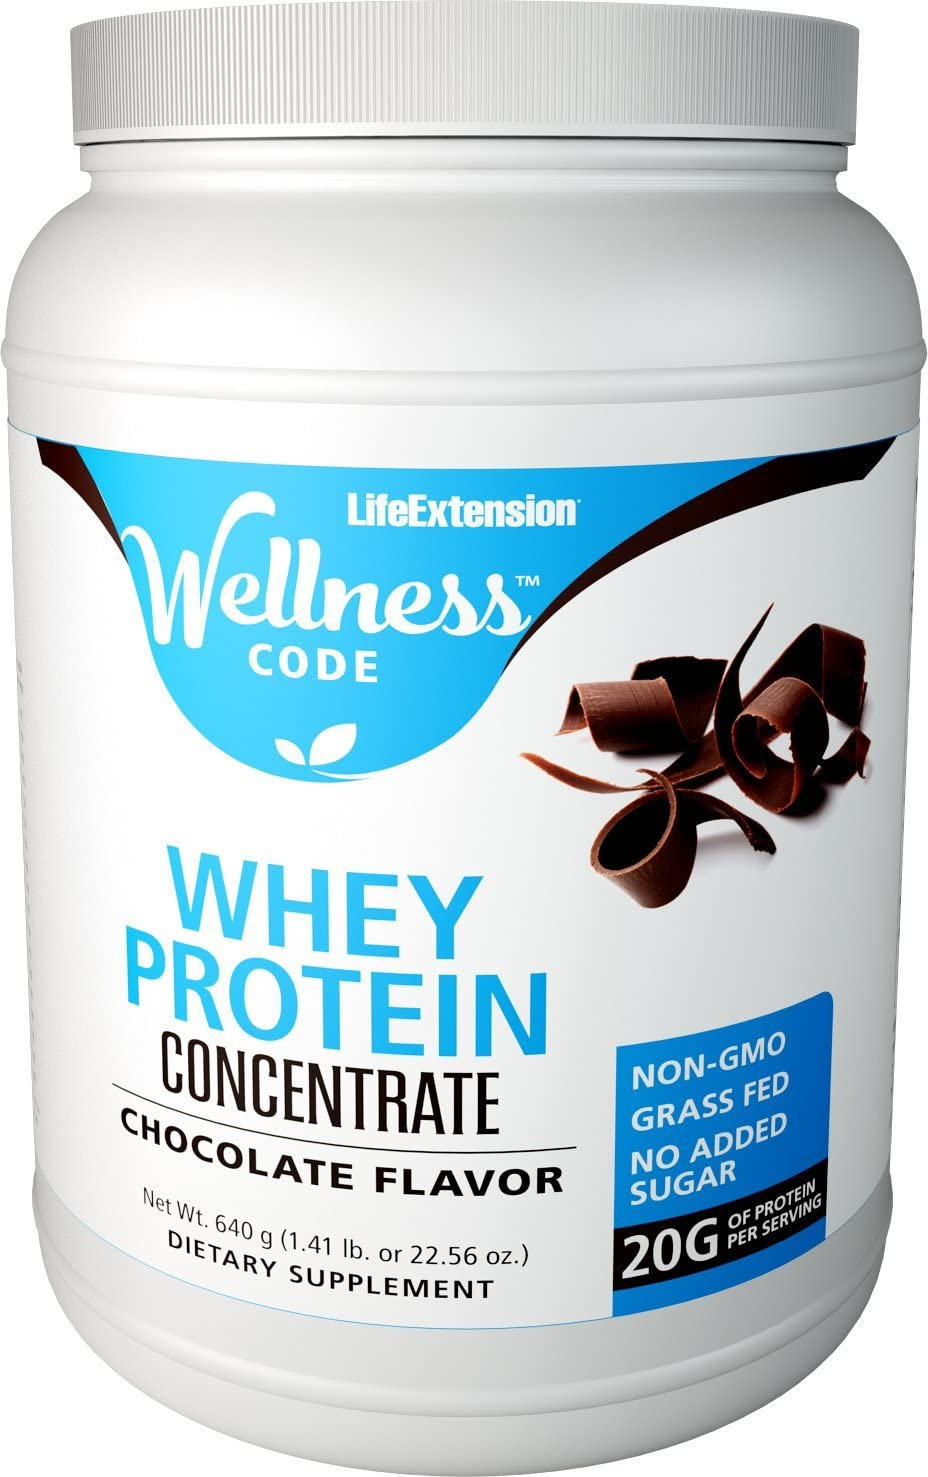 Life Extension Wellness Code Whey Protein Concentrate, Chocolate, 1.41 Pound